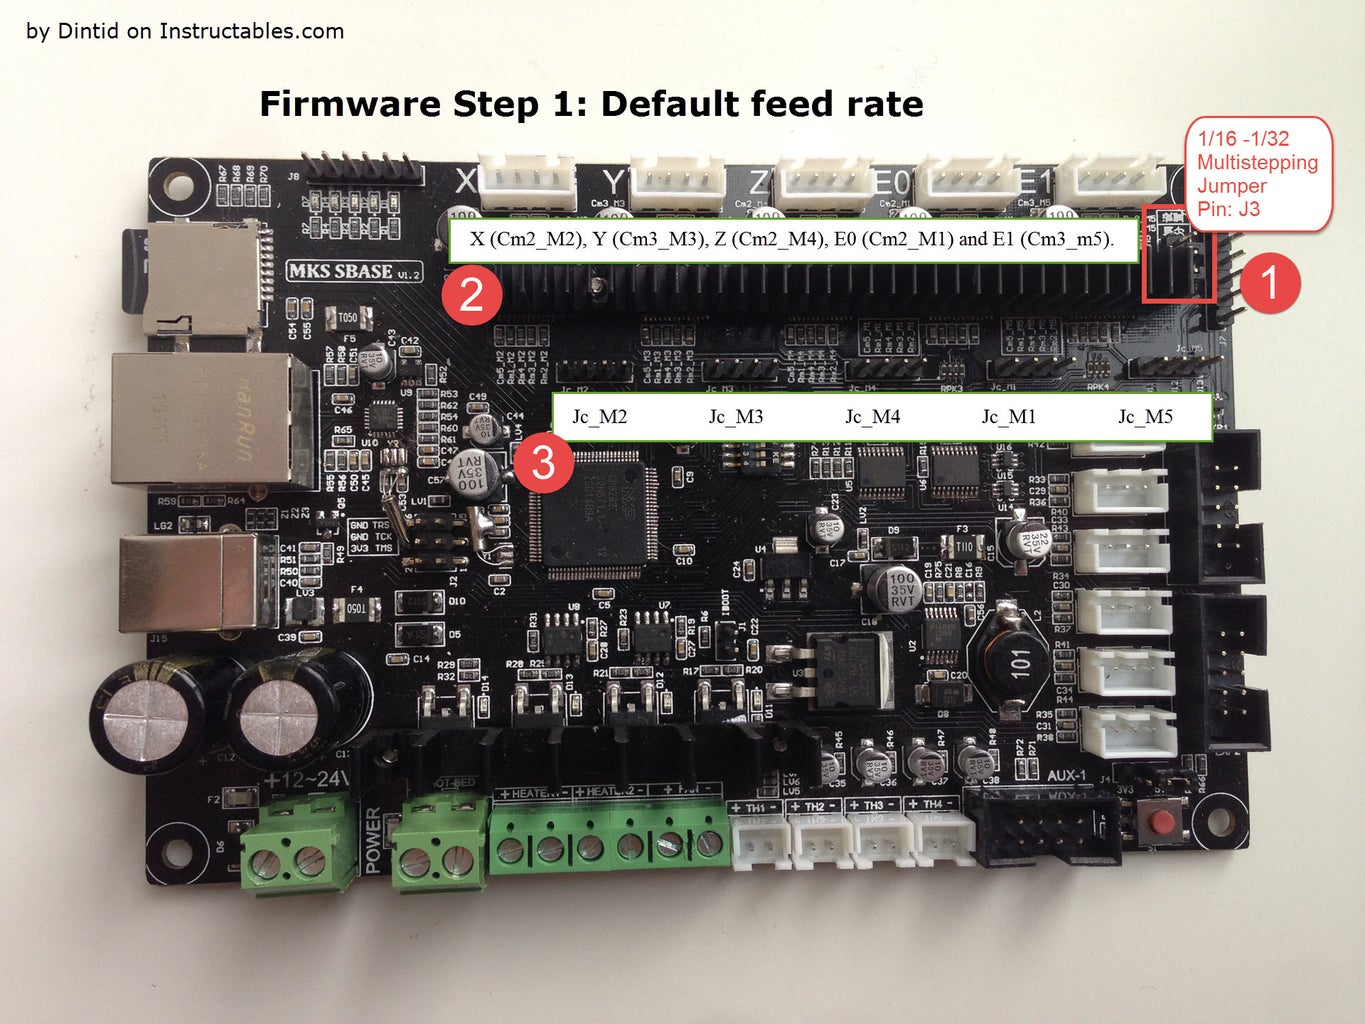 Firmware Step 1: Default Feed Rate